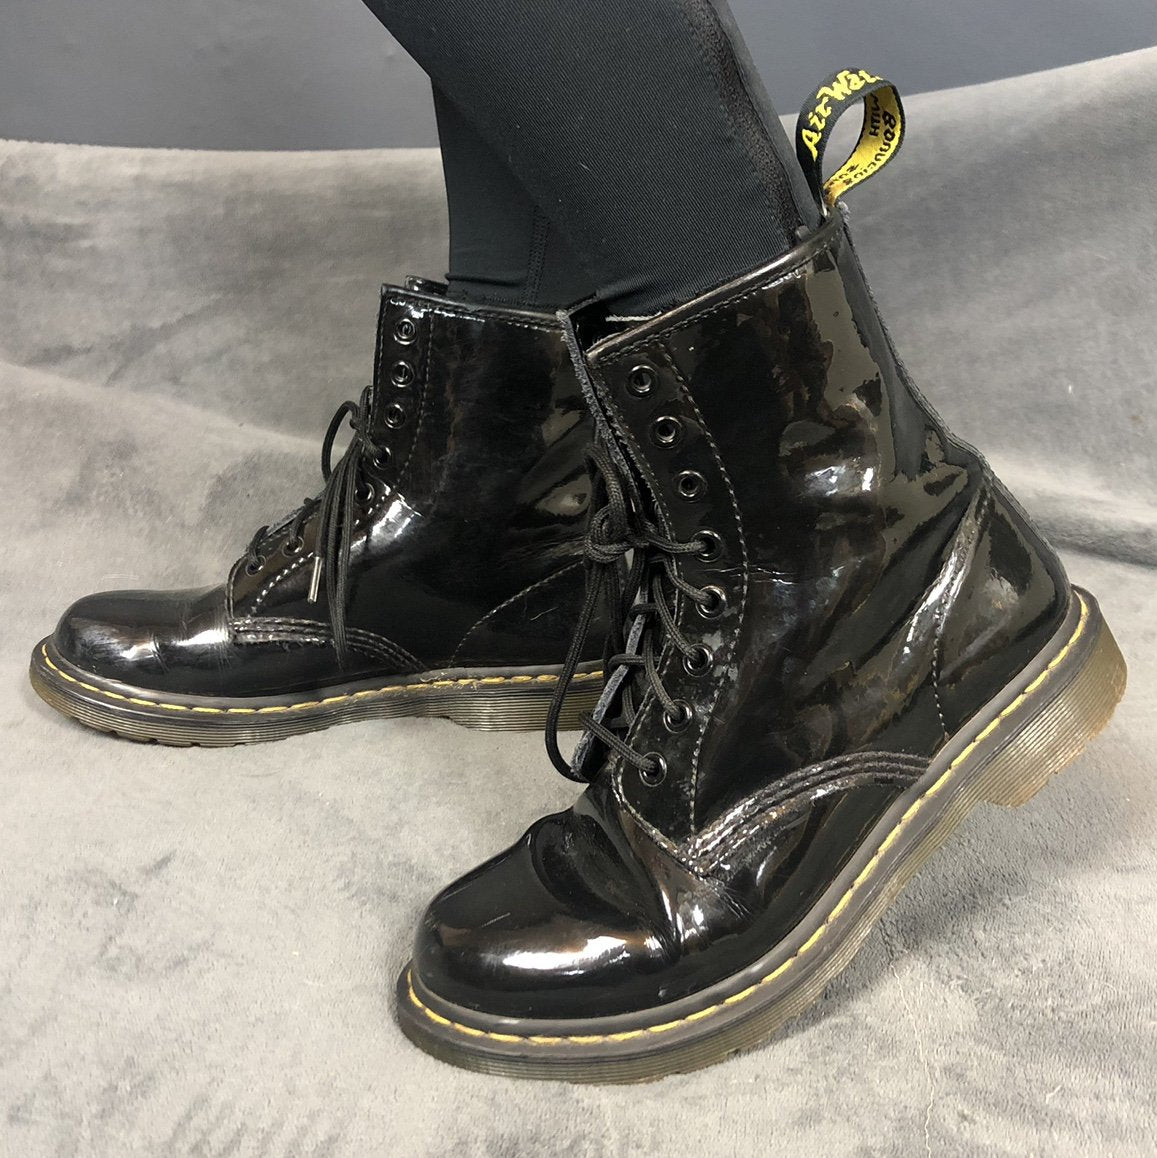 Dr Martens Patent Leather Boots - Size UK 6 - Vintique Clothing